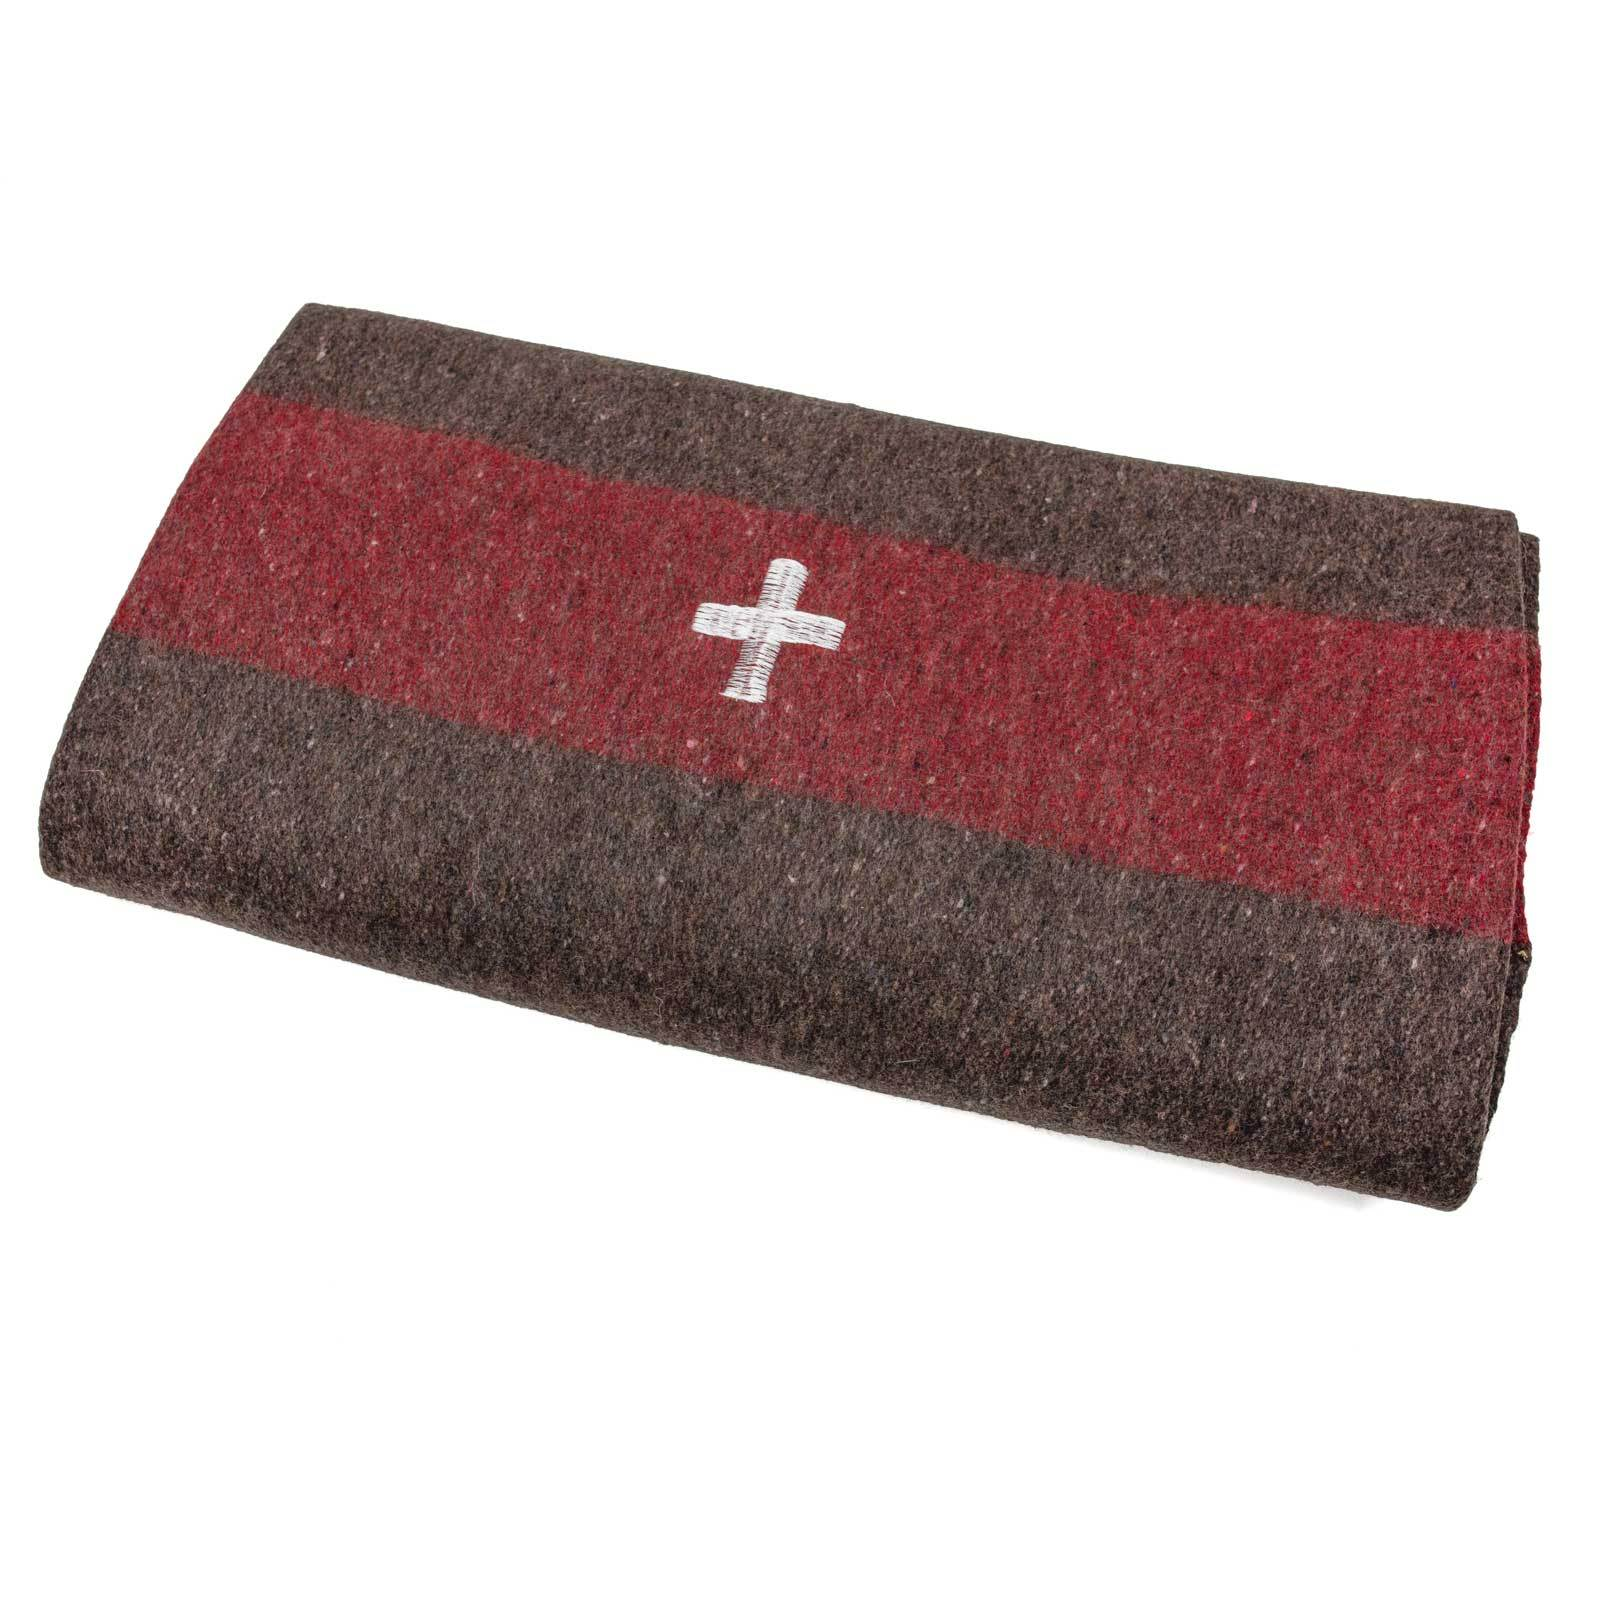 Swiss Army Reproduction Wool Blanket | Premium Quality